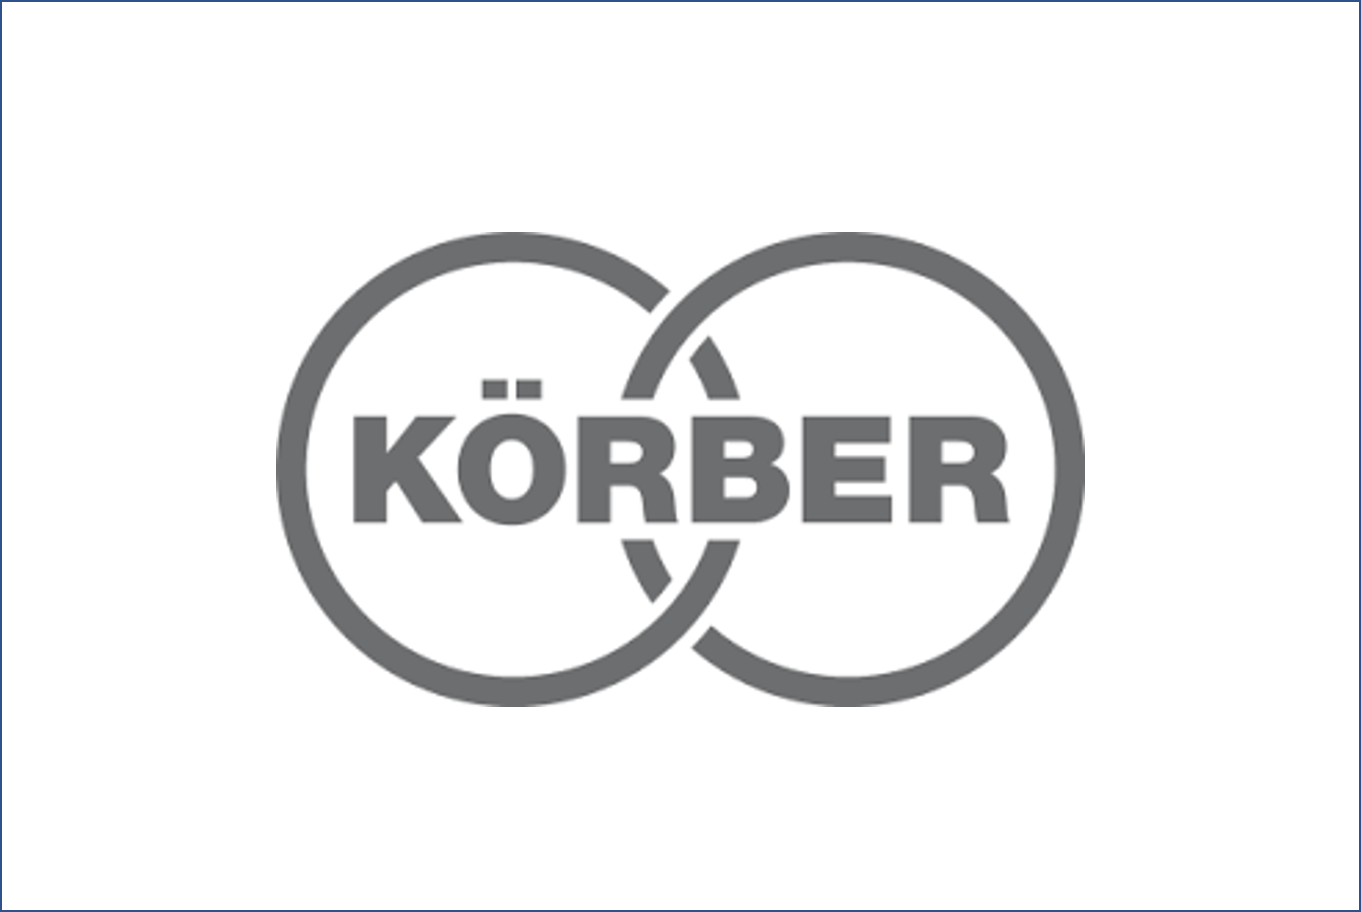 KÖRBER ACQUIRES HIGHJUMP – A LEADING US-AMERICAN SUPPLY CHAIN AND CLOUD SOLUTIONS SPECIALIST